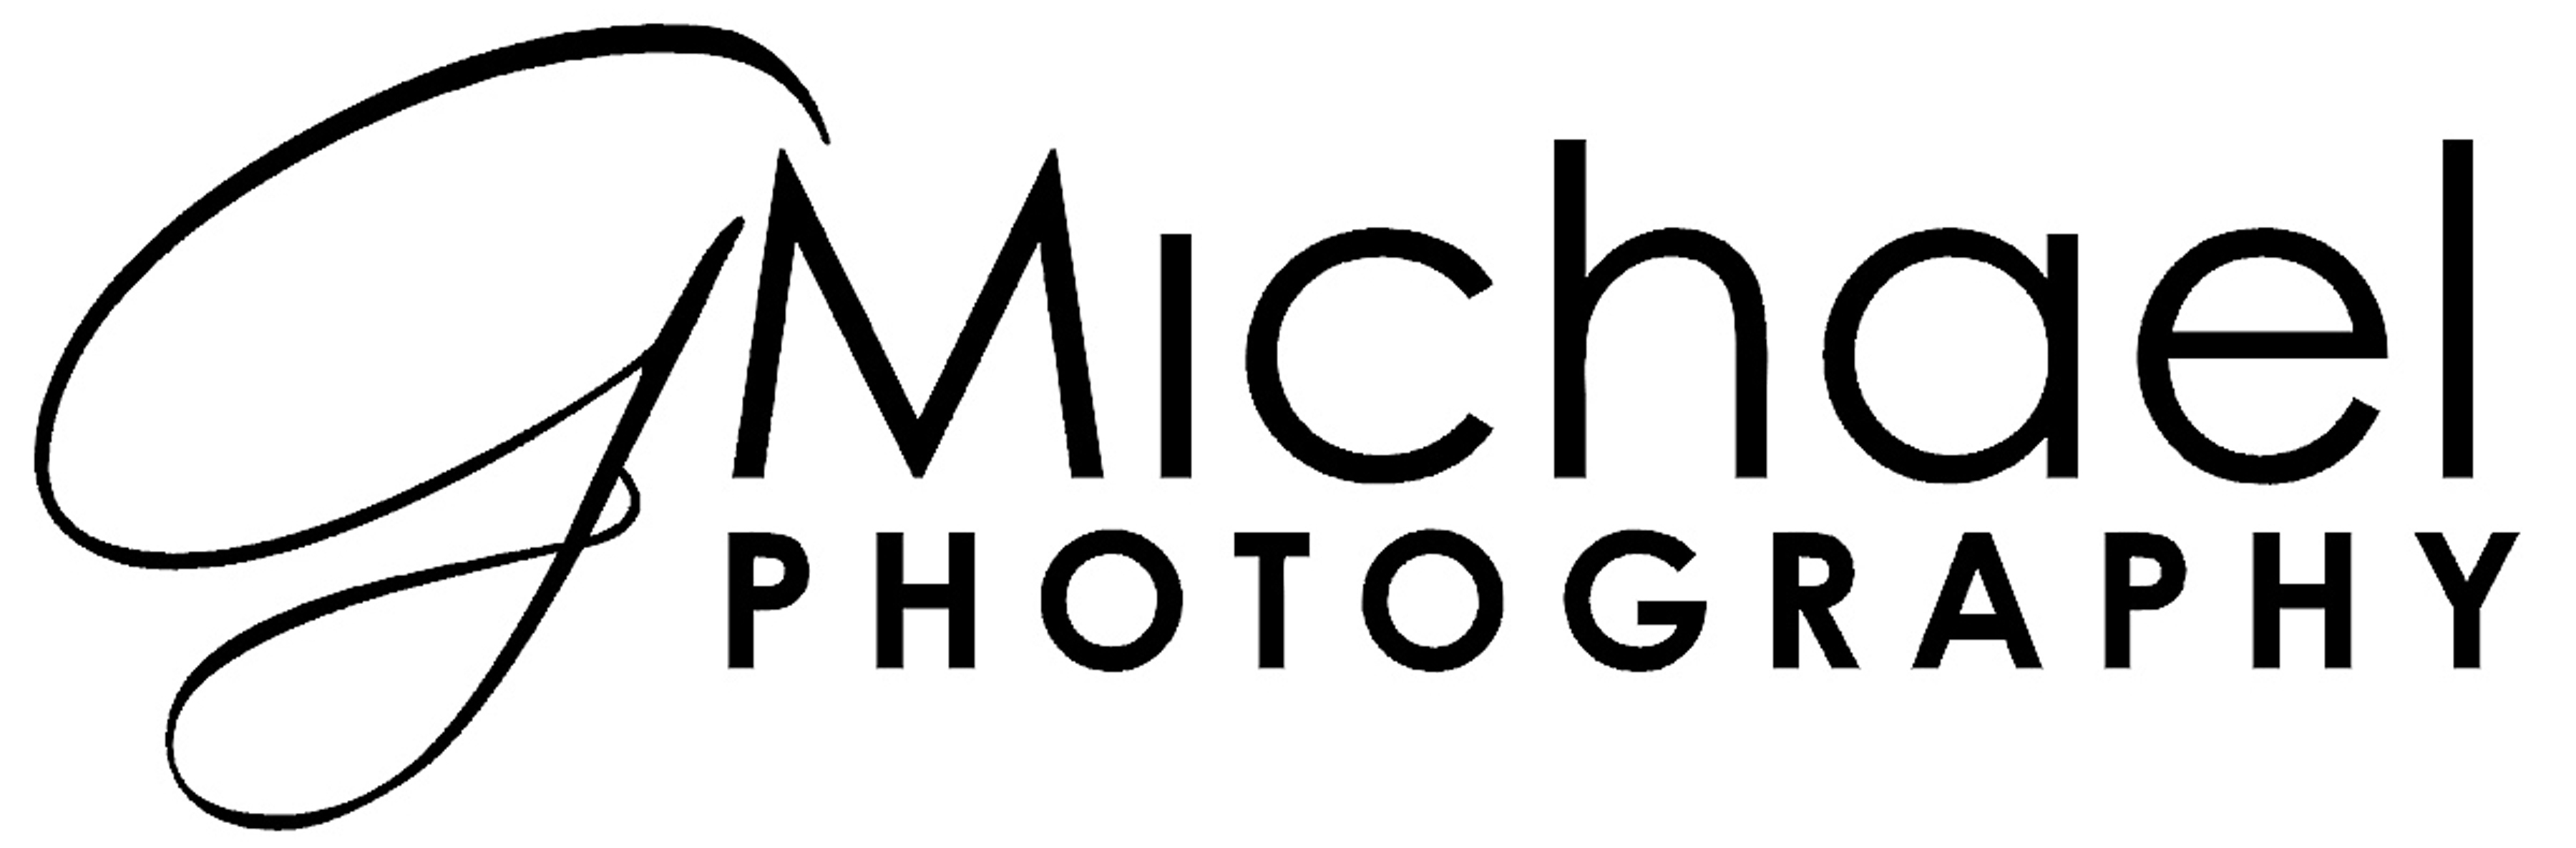 G. Micheal Photography